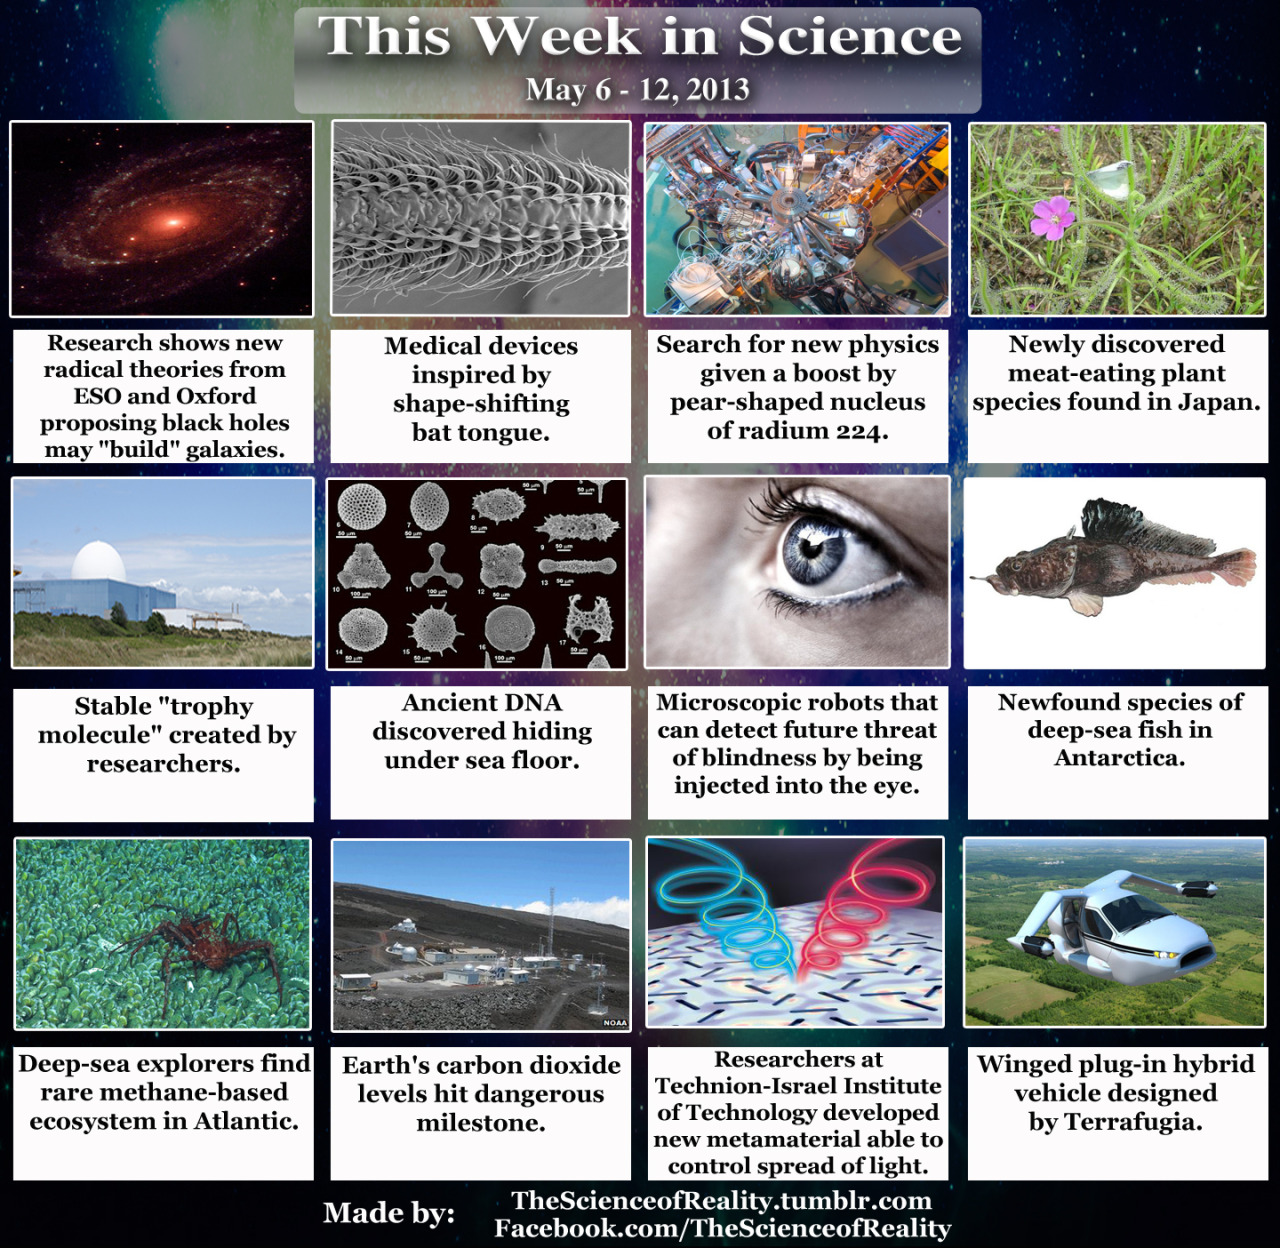 thescienceofreality:  This Week in Science - May 6 - 12, 2013: ESO & Oxford theories here. Medical device inspiration here. Pear-shaped nucleus here. Meat-eating plant in Japan here. Trophy molecule here. Ancient DNA here. Injectable eye robots here. Antarctica deep-sea fish here. Methane-based ecosystem here. Troubling carbon dioxide levels here. Metamaterial here. Winged hybrid vehicle here.